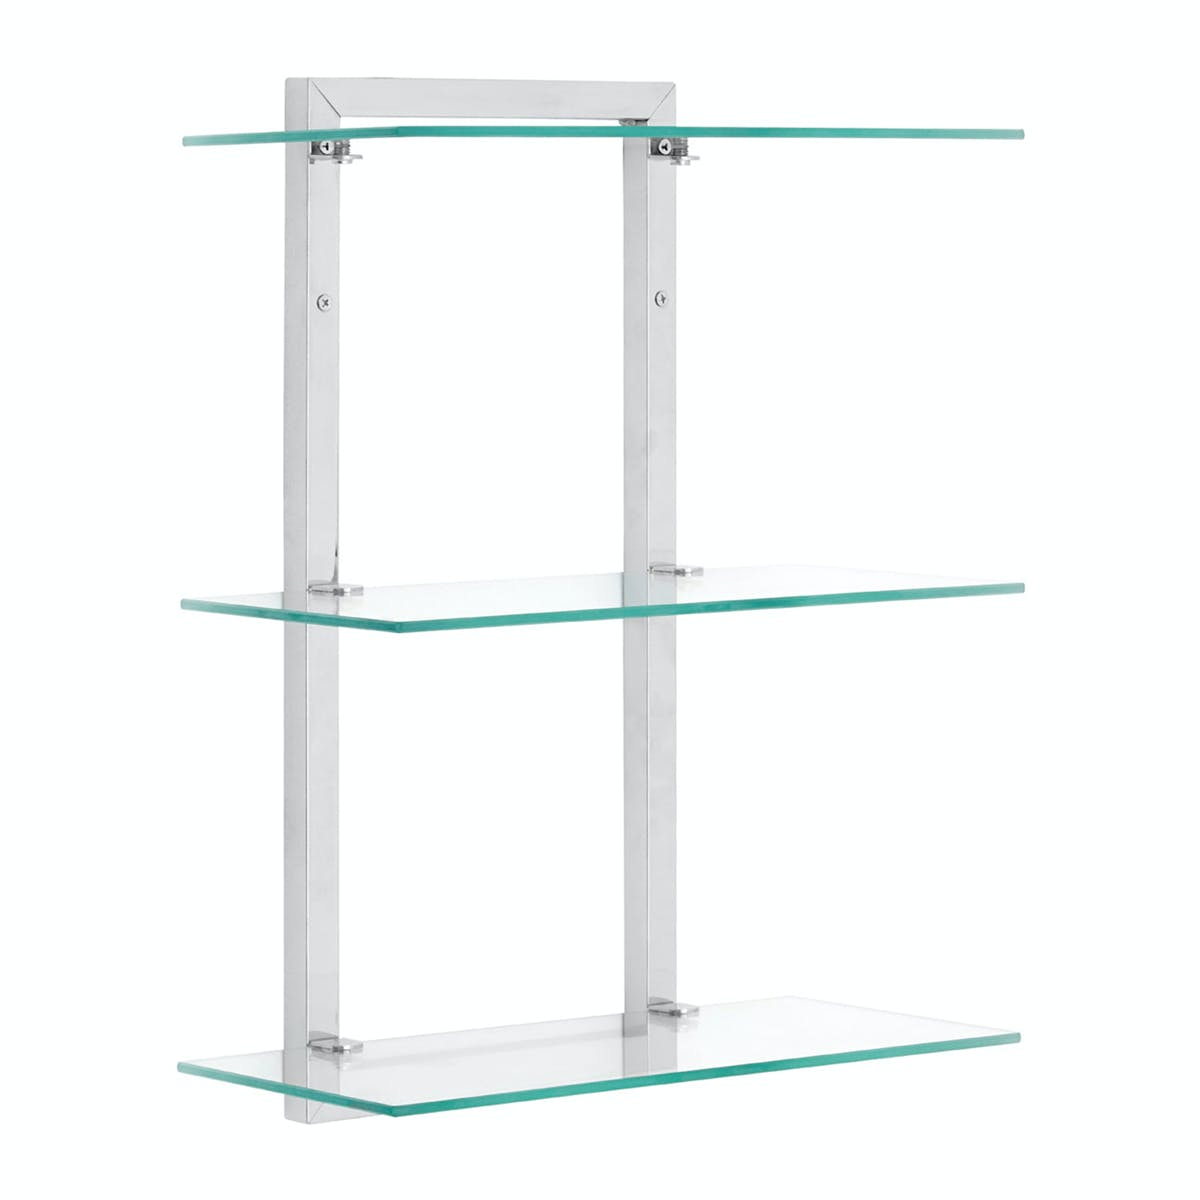 Accents Wall Mounted 3 Tier 46cm Glass Shelf Unit